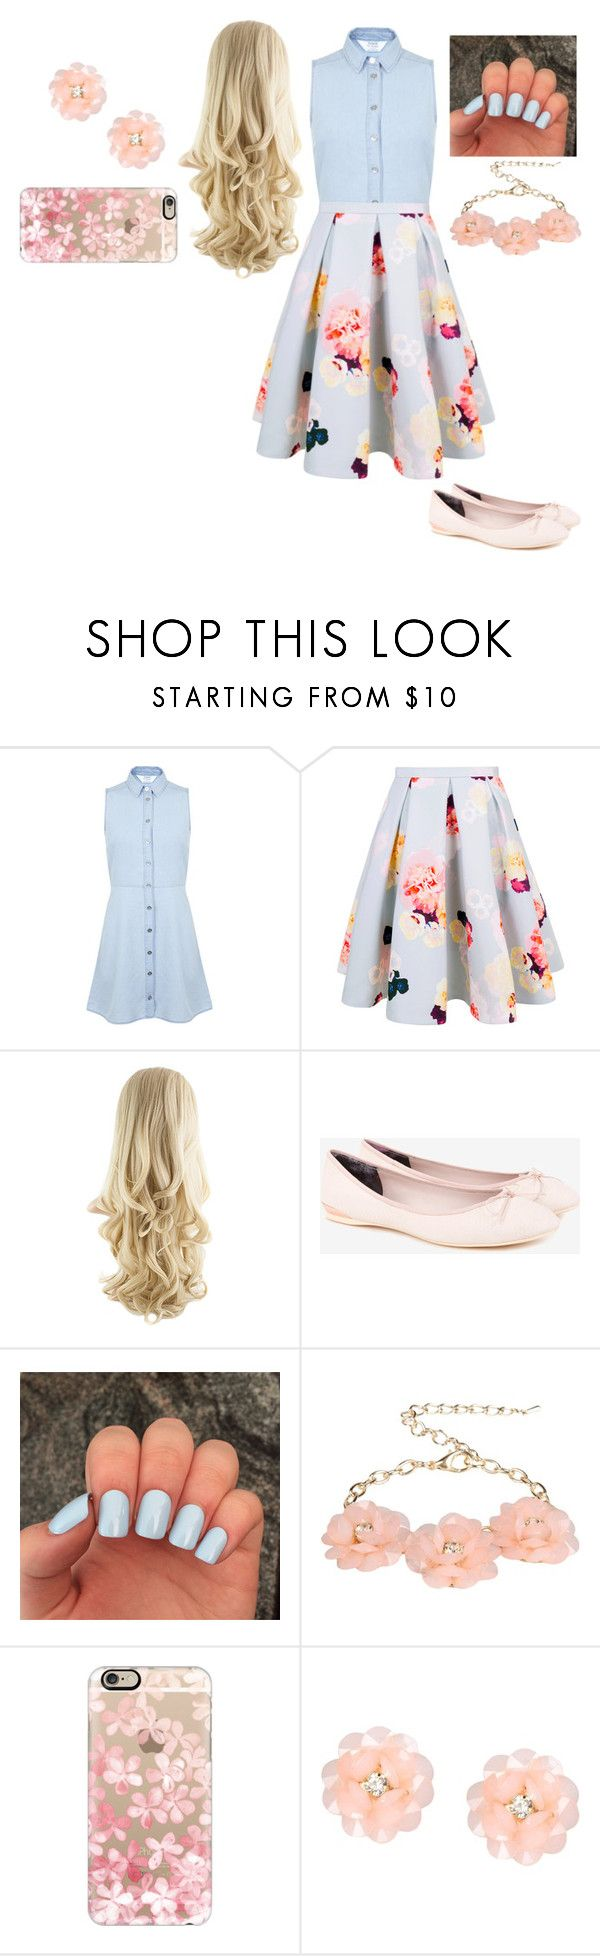 """""""Audrey (daughter of aurora)"""" by themightytiff ❤ liked on Polyvore featuring Miss Selfridge, Keepsake the Label, Ted Baker, Dettagli and Casetify"""